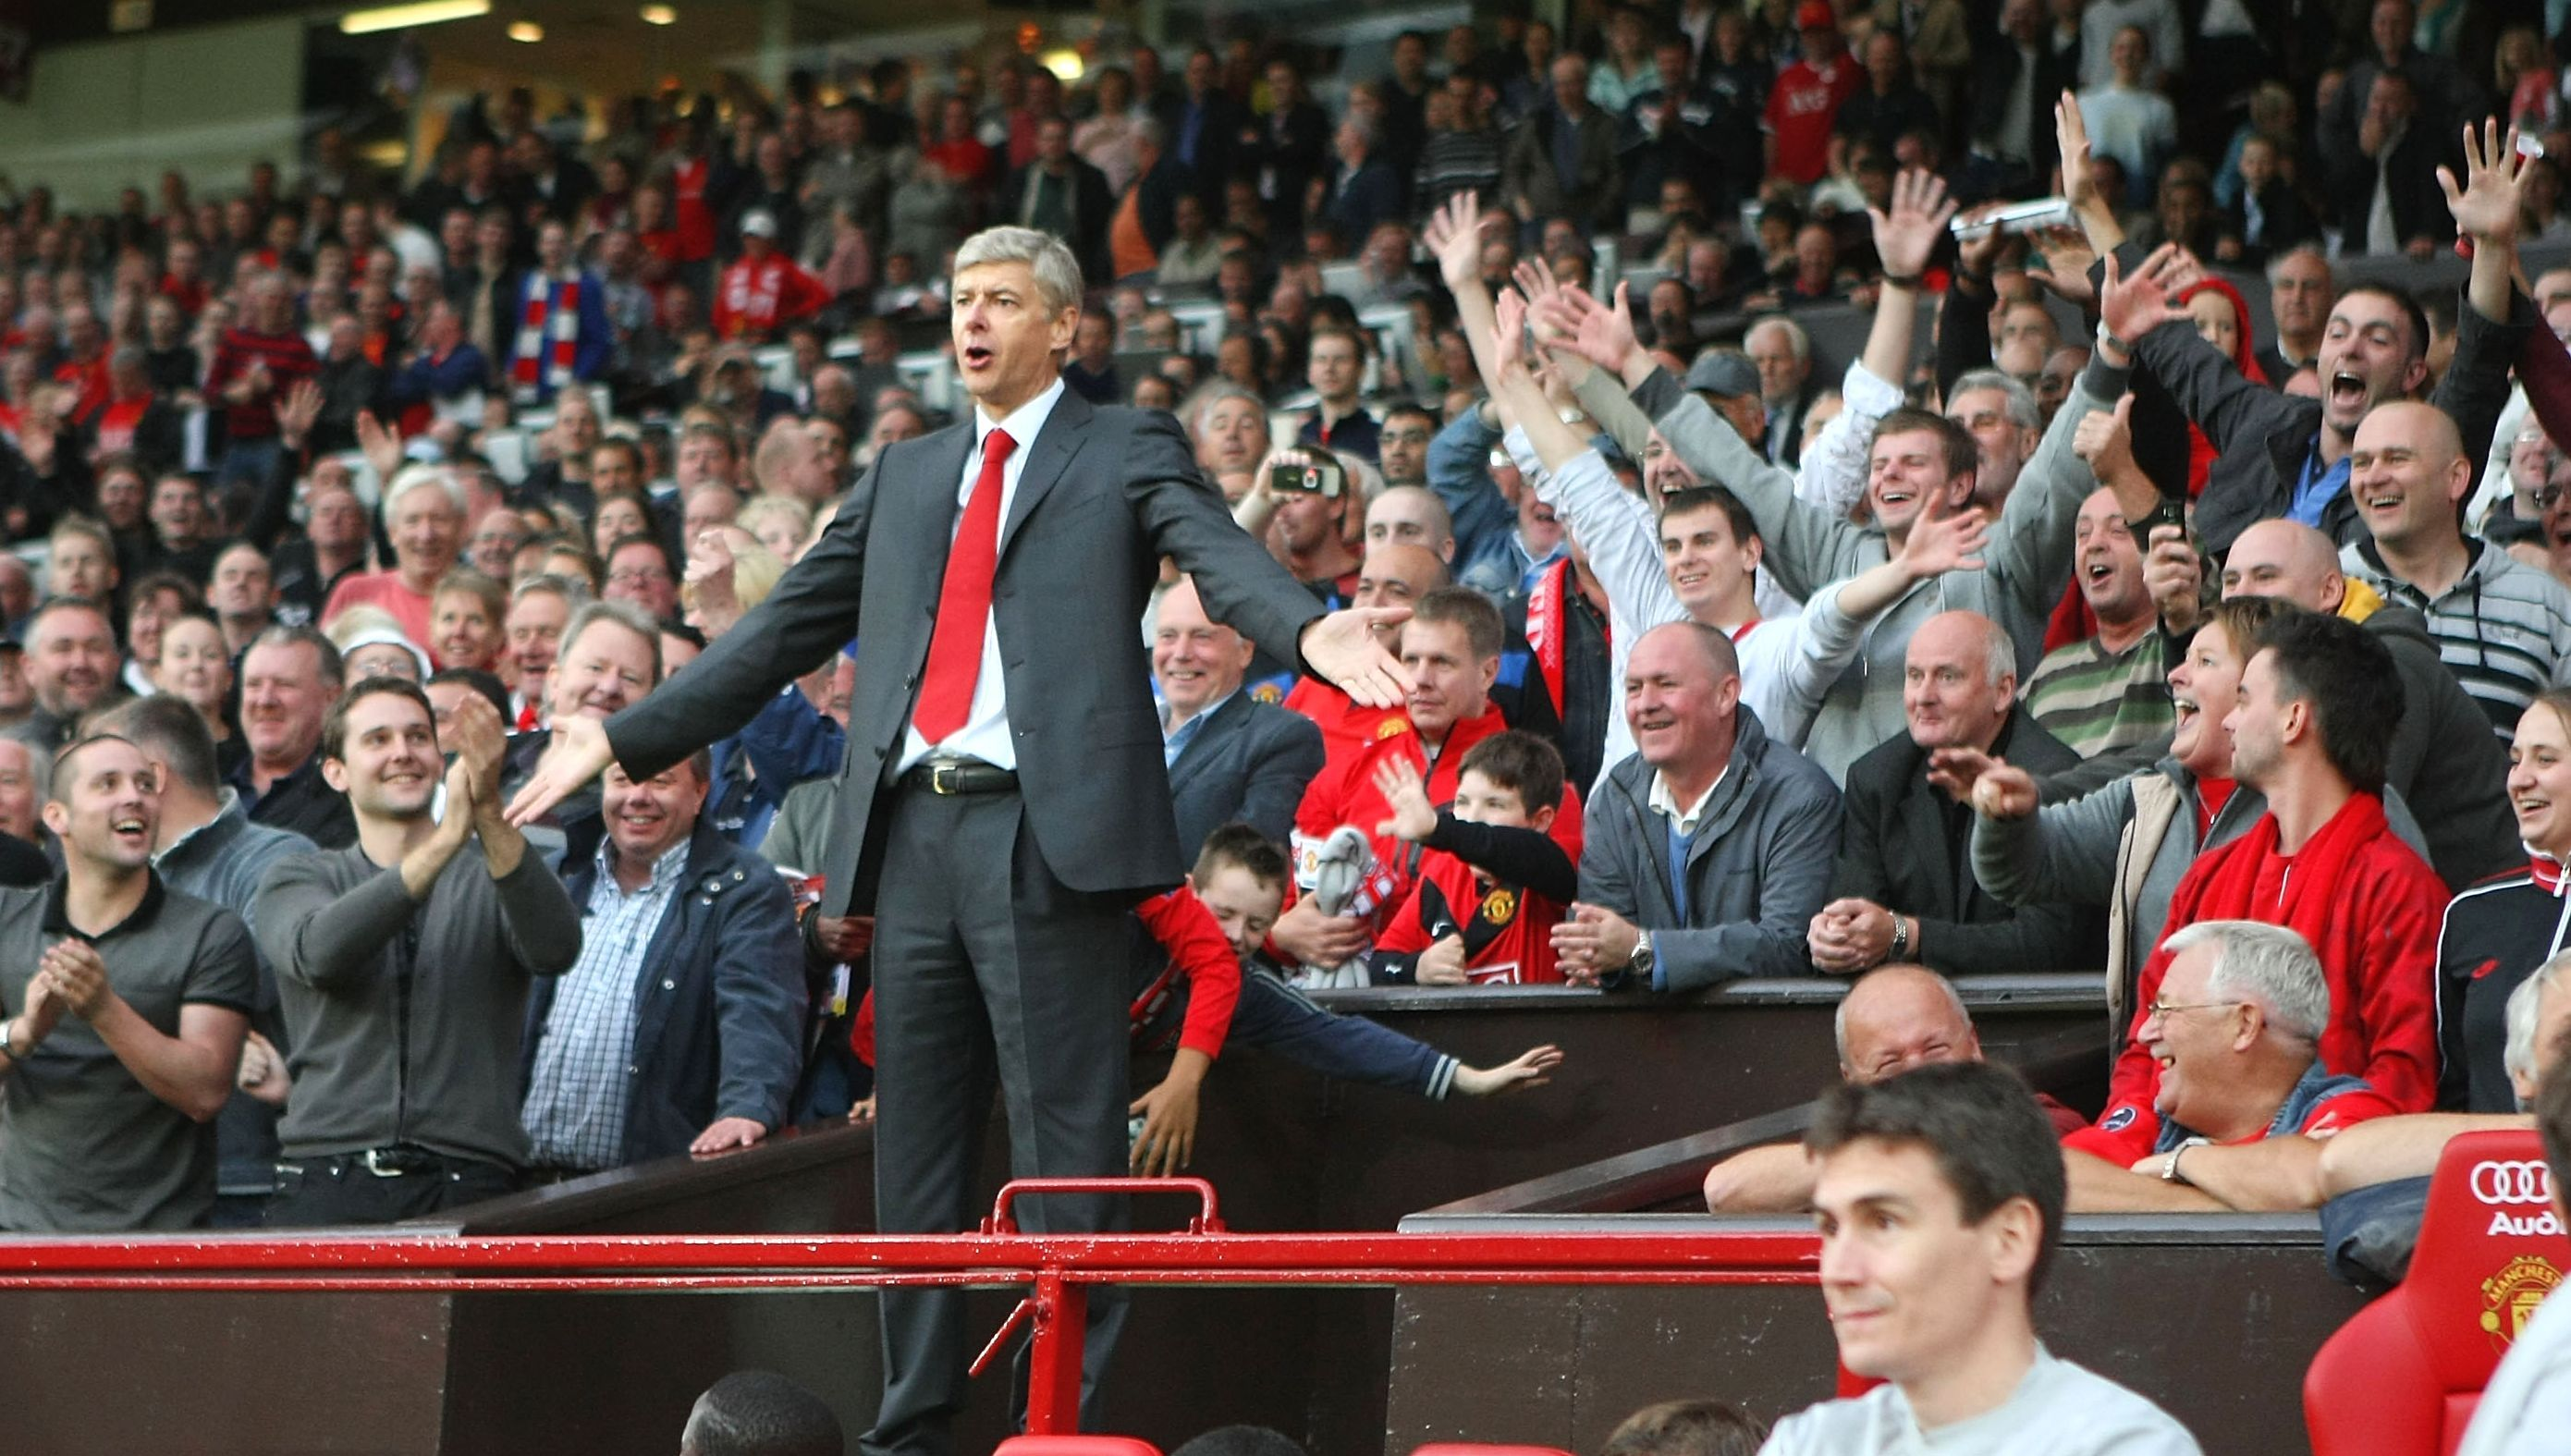 Arsene Wenger was sent to the Old Trafford stands in a 2-1 loss to Manchester United after kicking a water bottle following a disallowed goal.